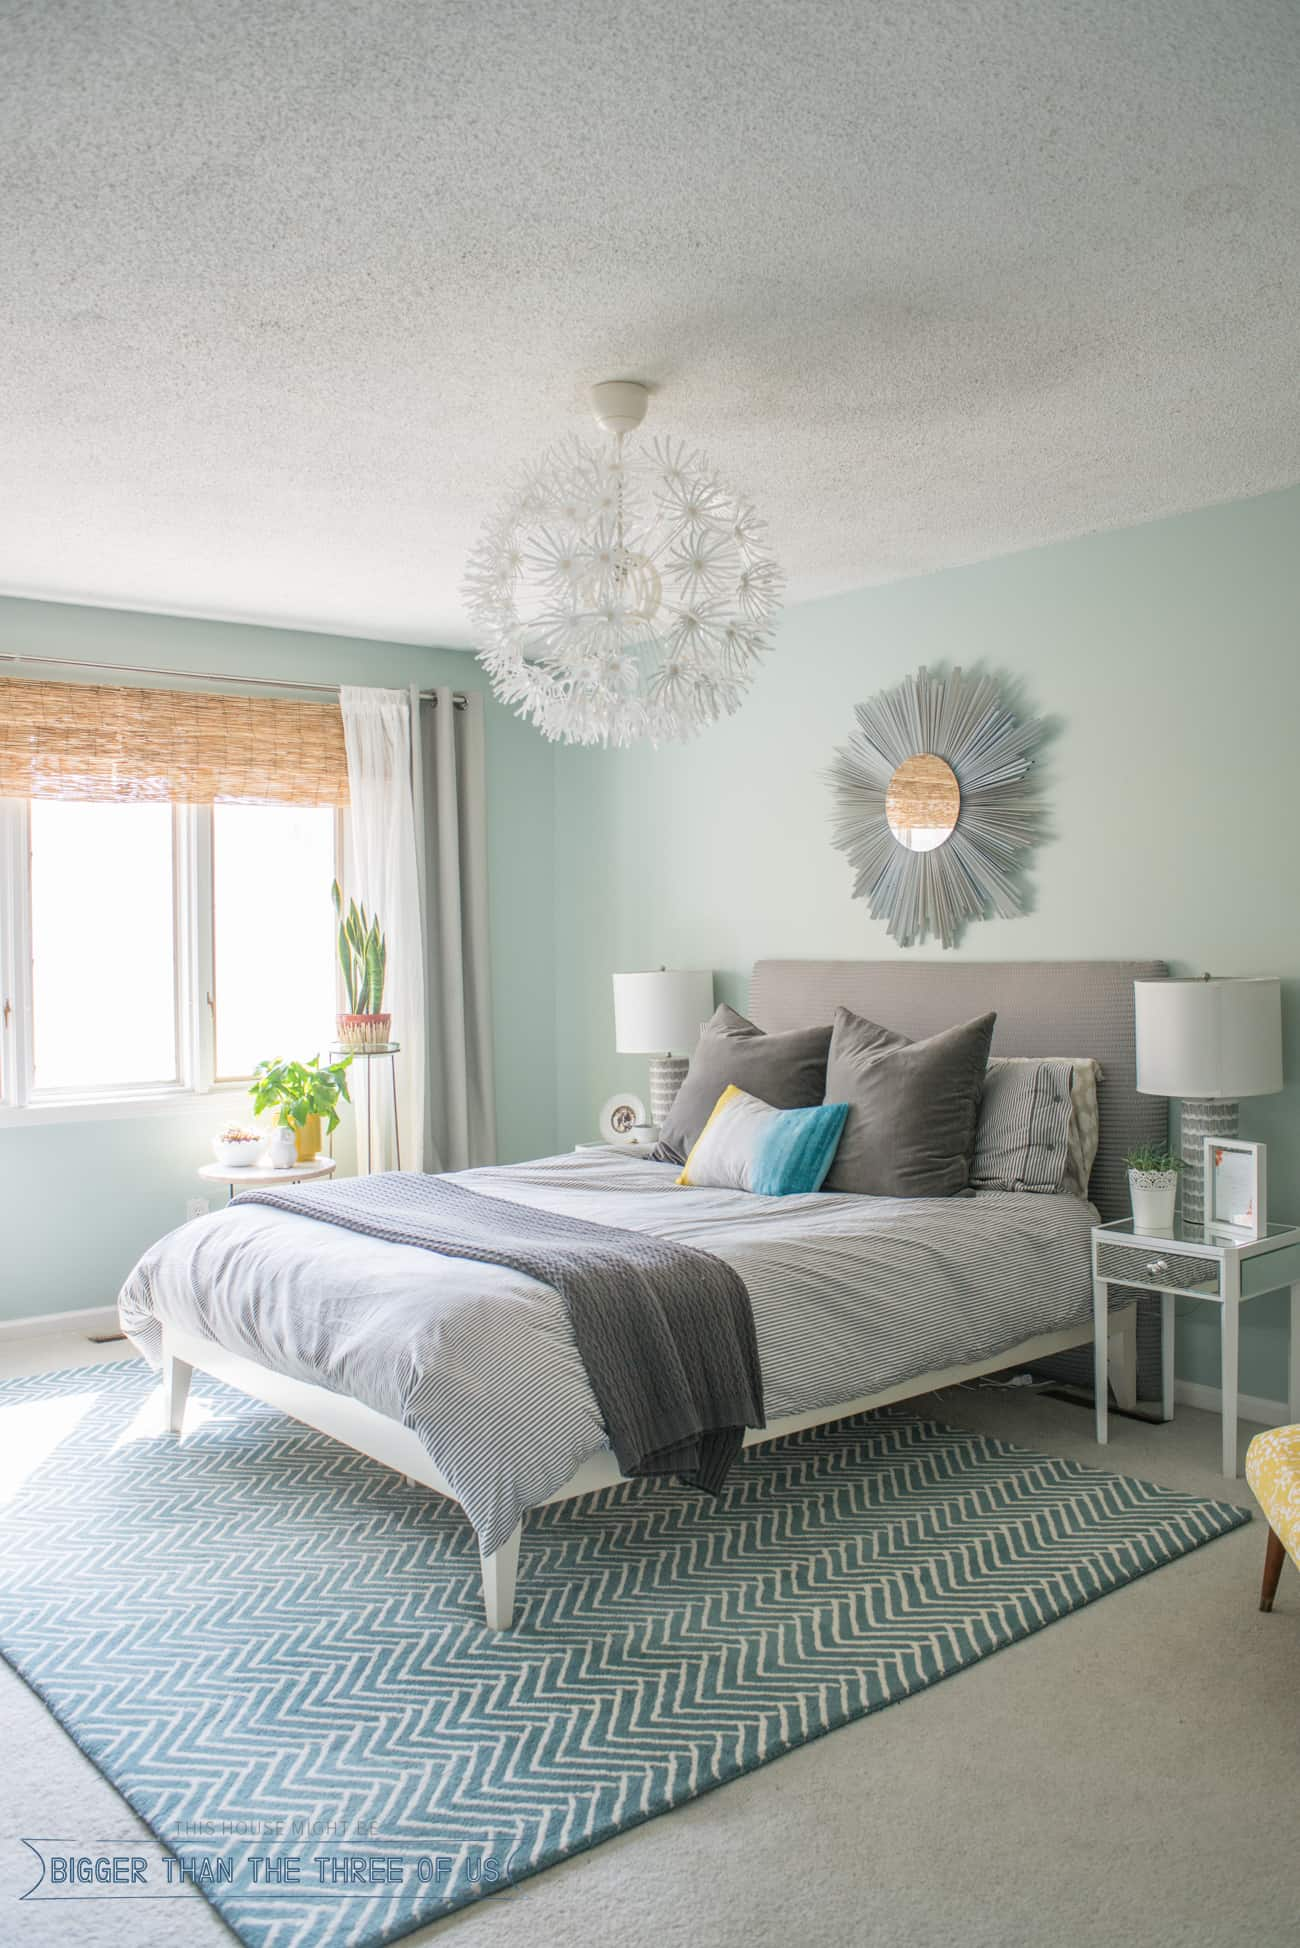 Dreamy Bohemian Bedroom Design - Bigger Than the Three of Us on Master Bedroom Curtains  id=27046